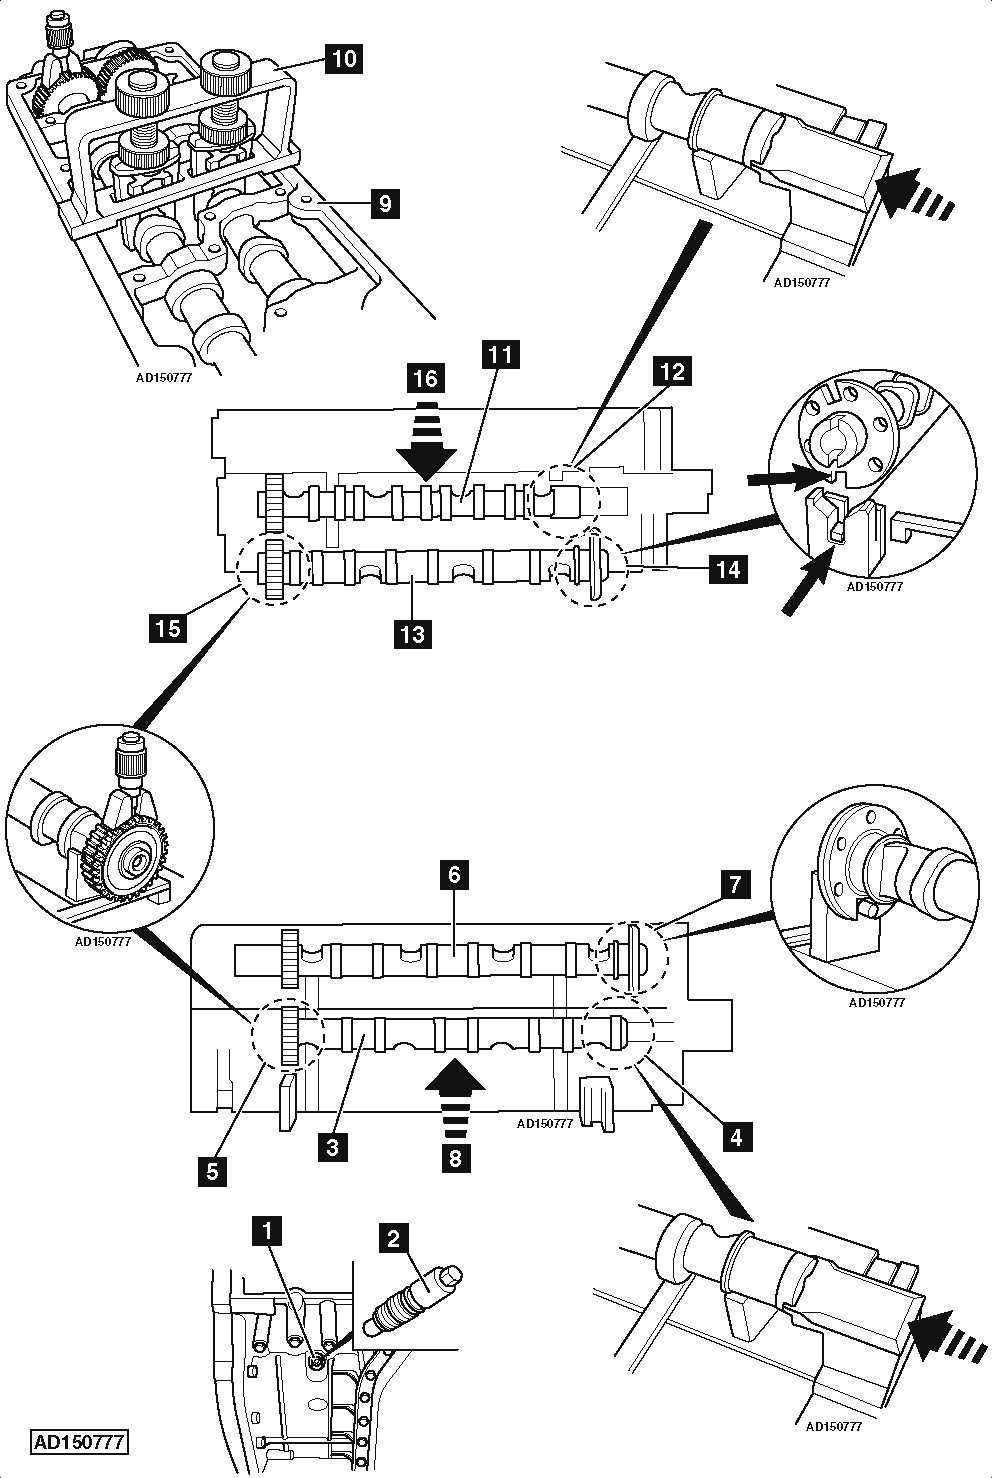 Serpentine Belt Diagram For 2002 Volvo S80 Volvo XC70